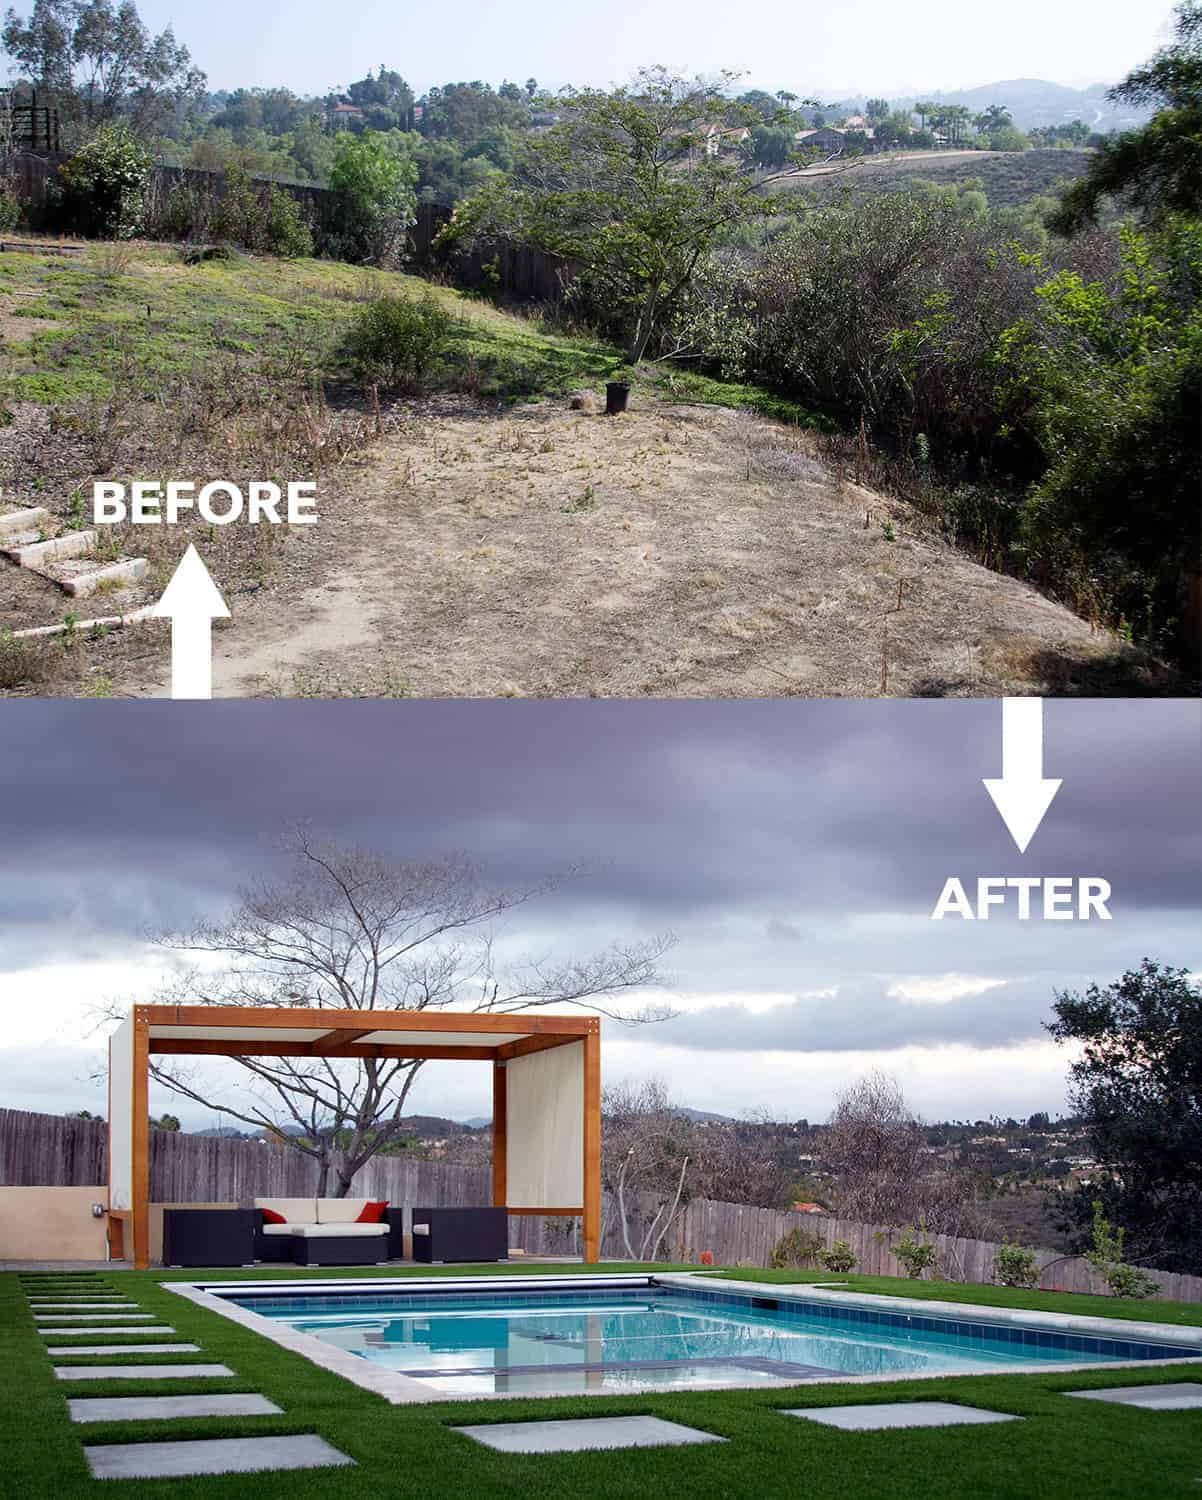 Before and after photos of my backyard. Big change, right?!? You should see the rest of the photos!